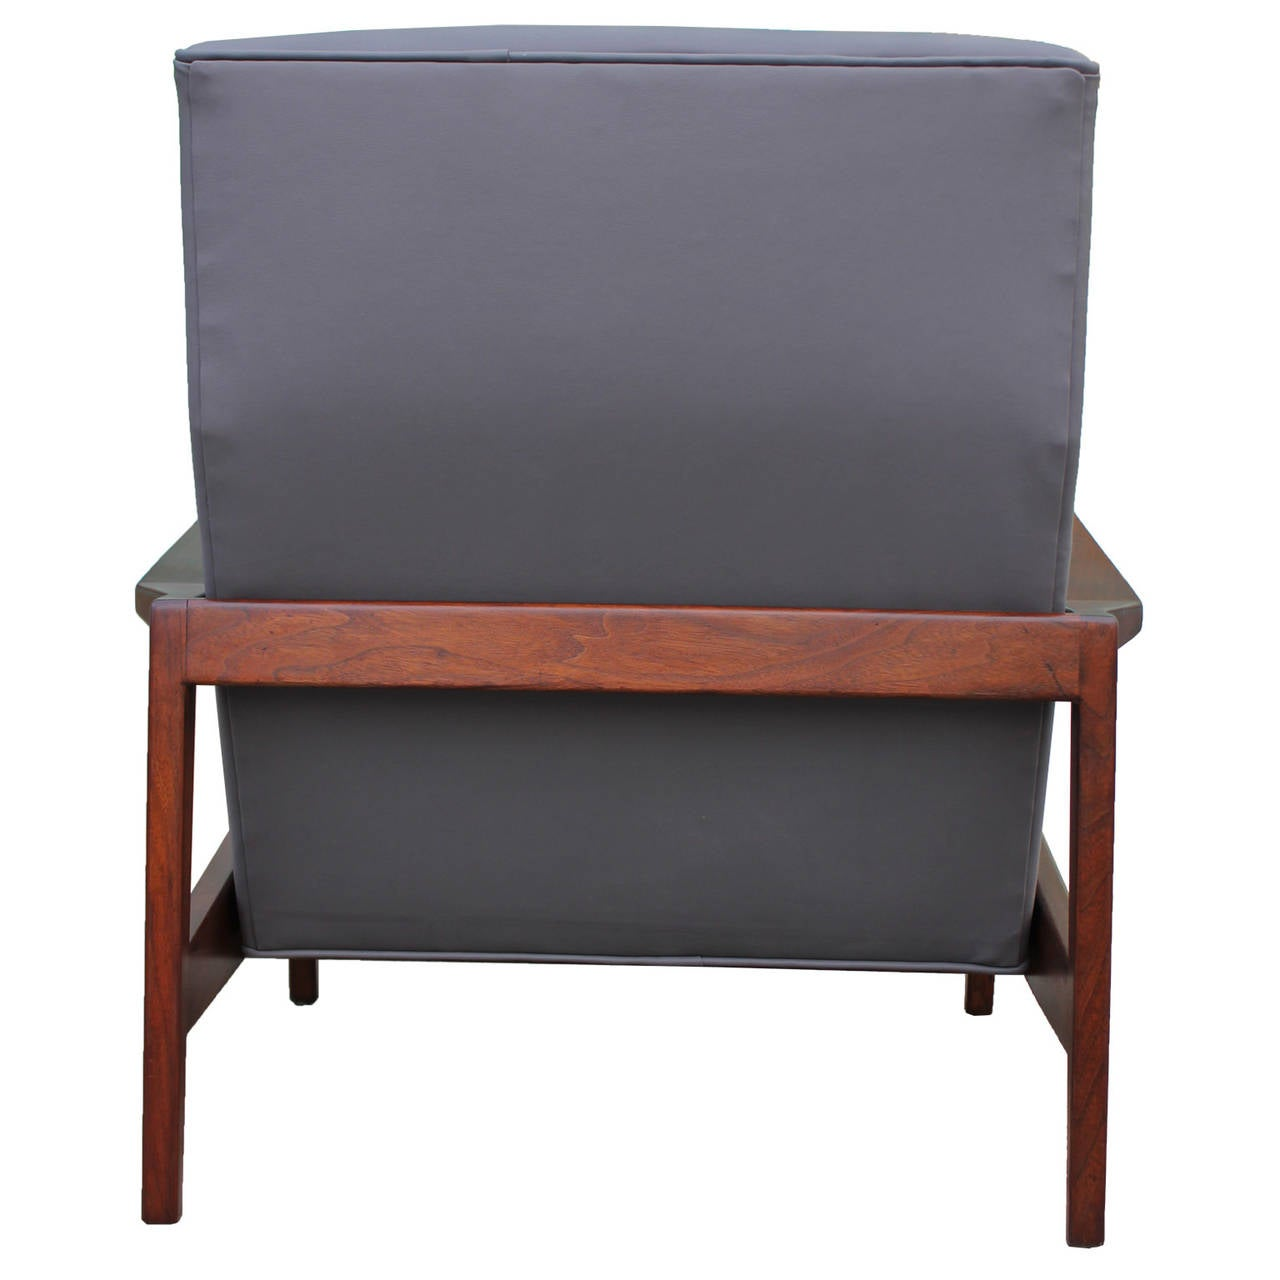 Jens Risom Grey Leather Chair and Ottoman at 1stdibs